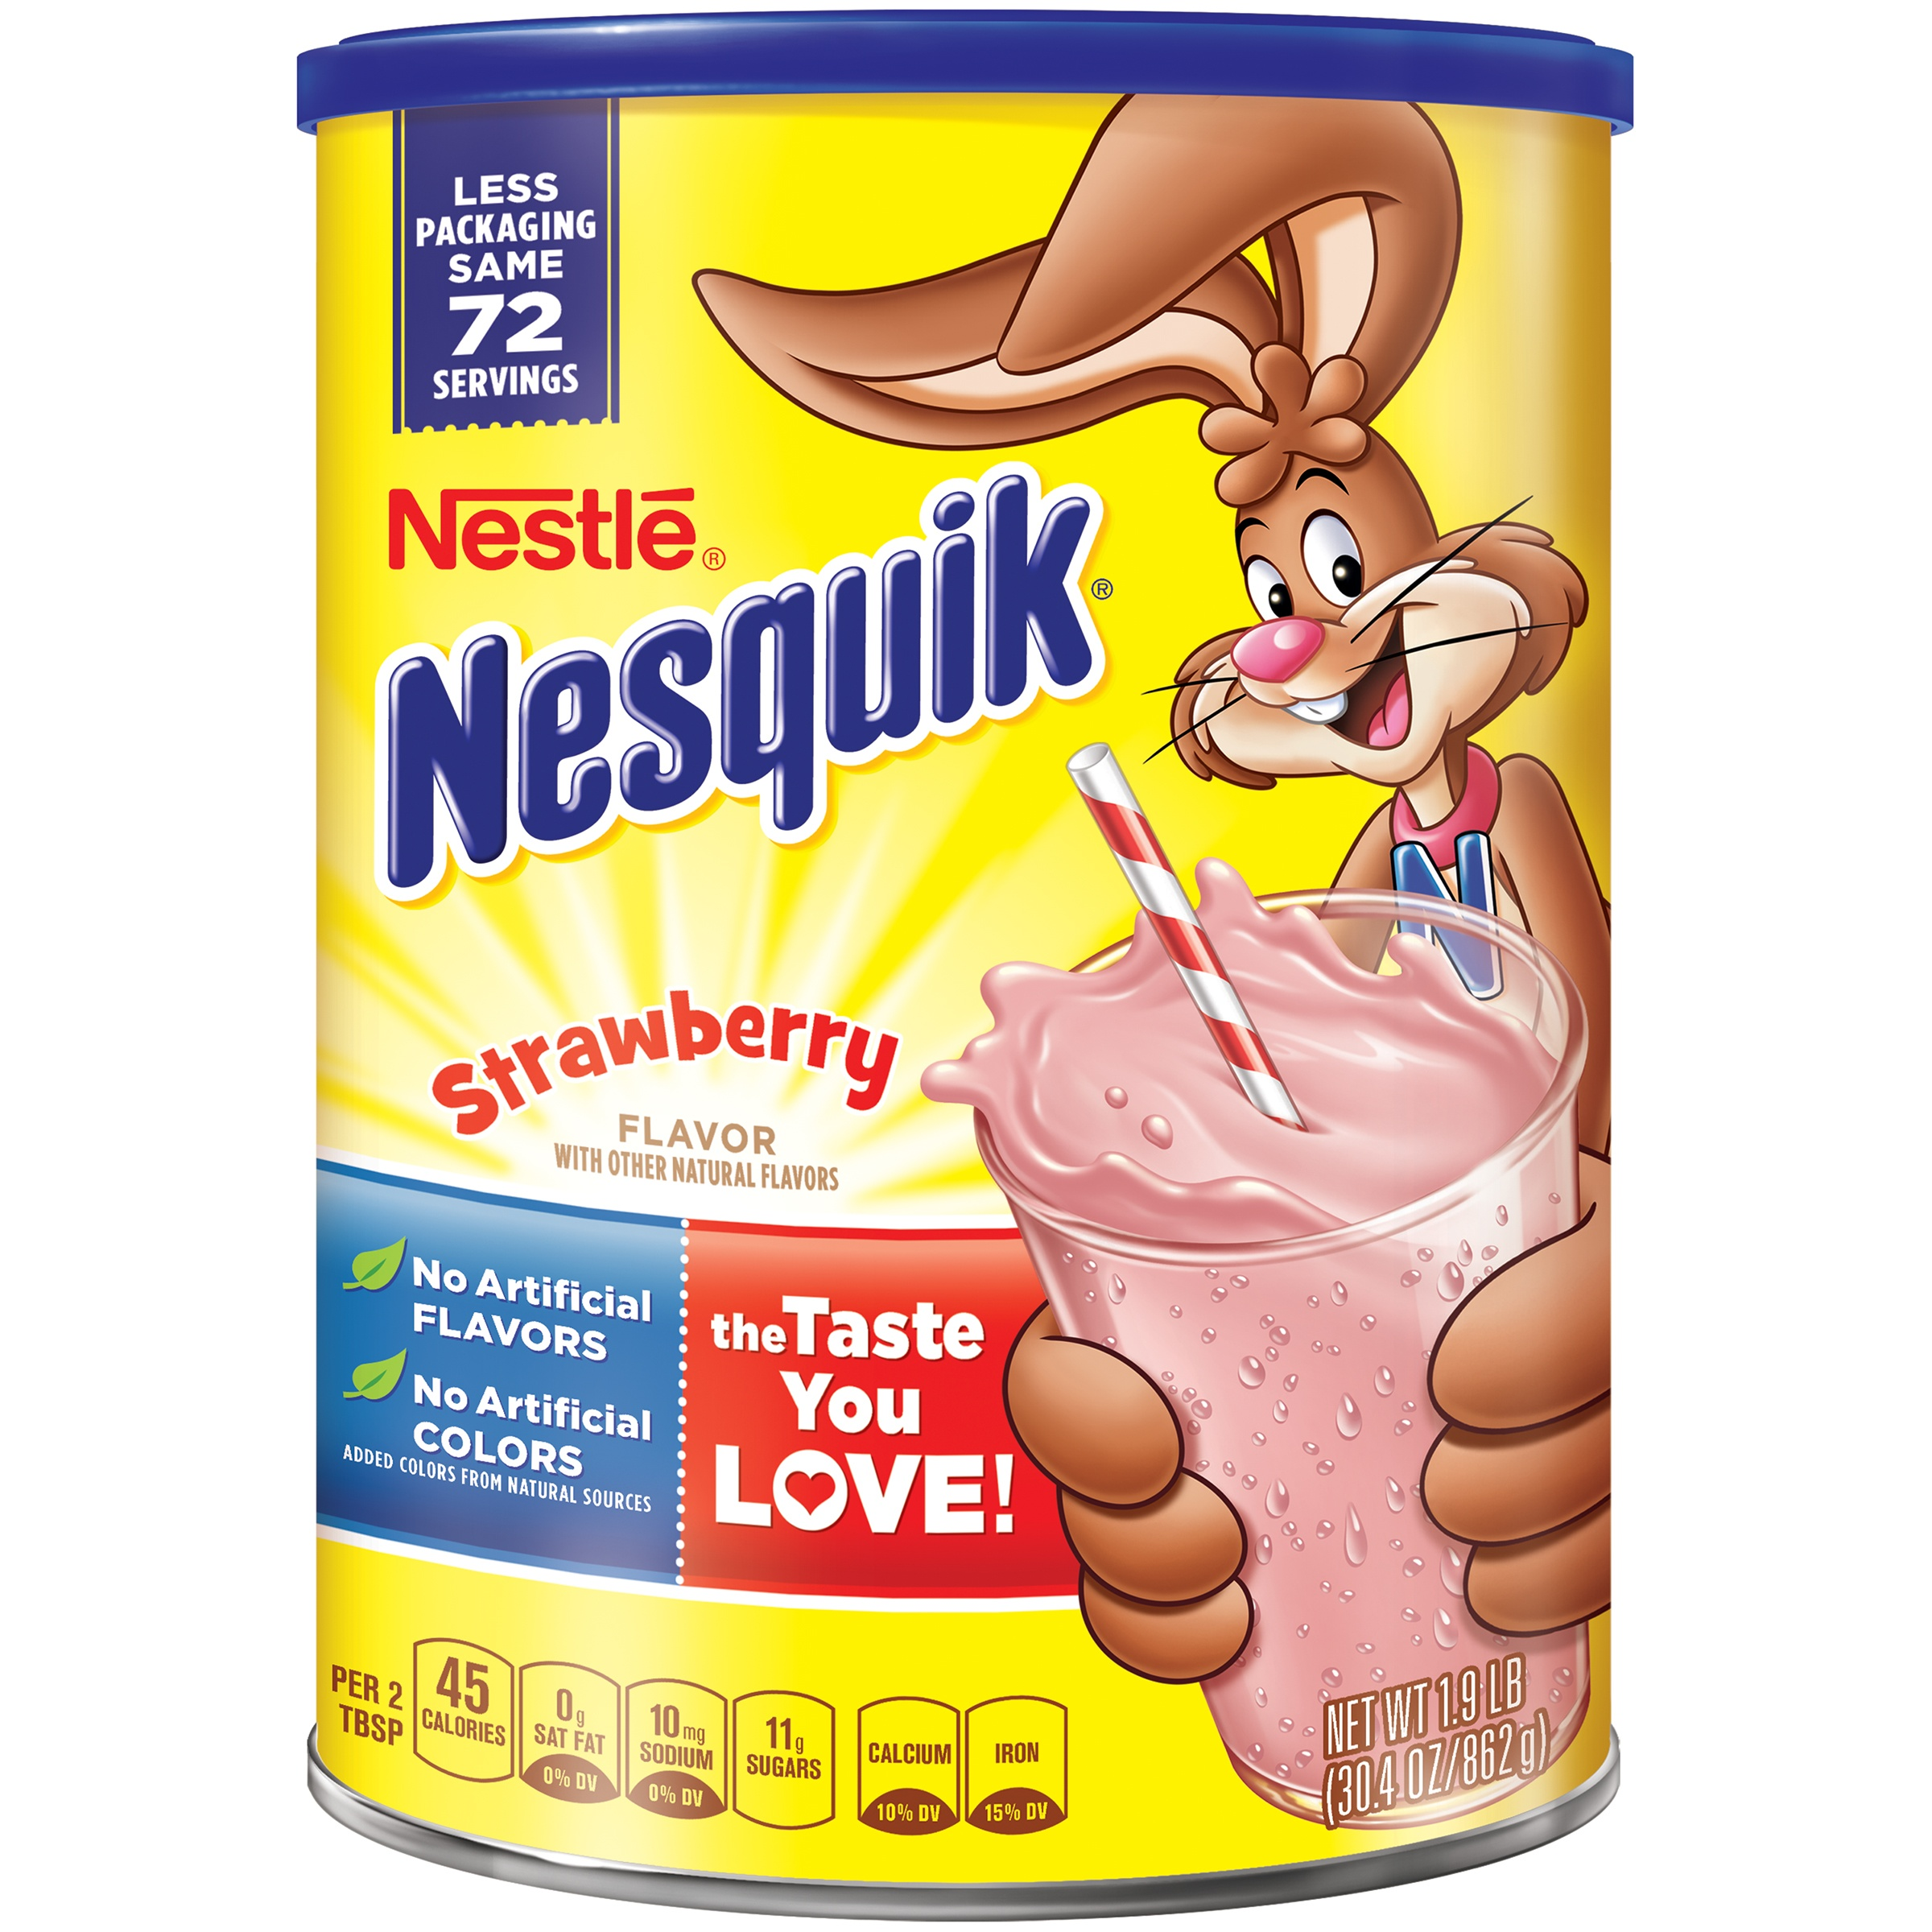 NESTLE NESQUIK Strawberry Flavored Powder 2.2 lb. Canister